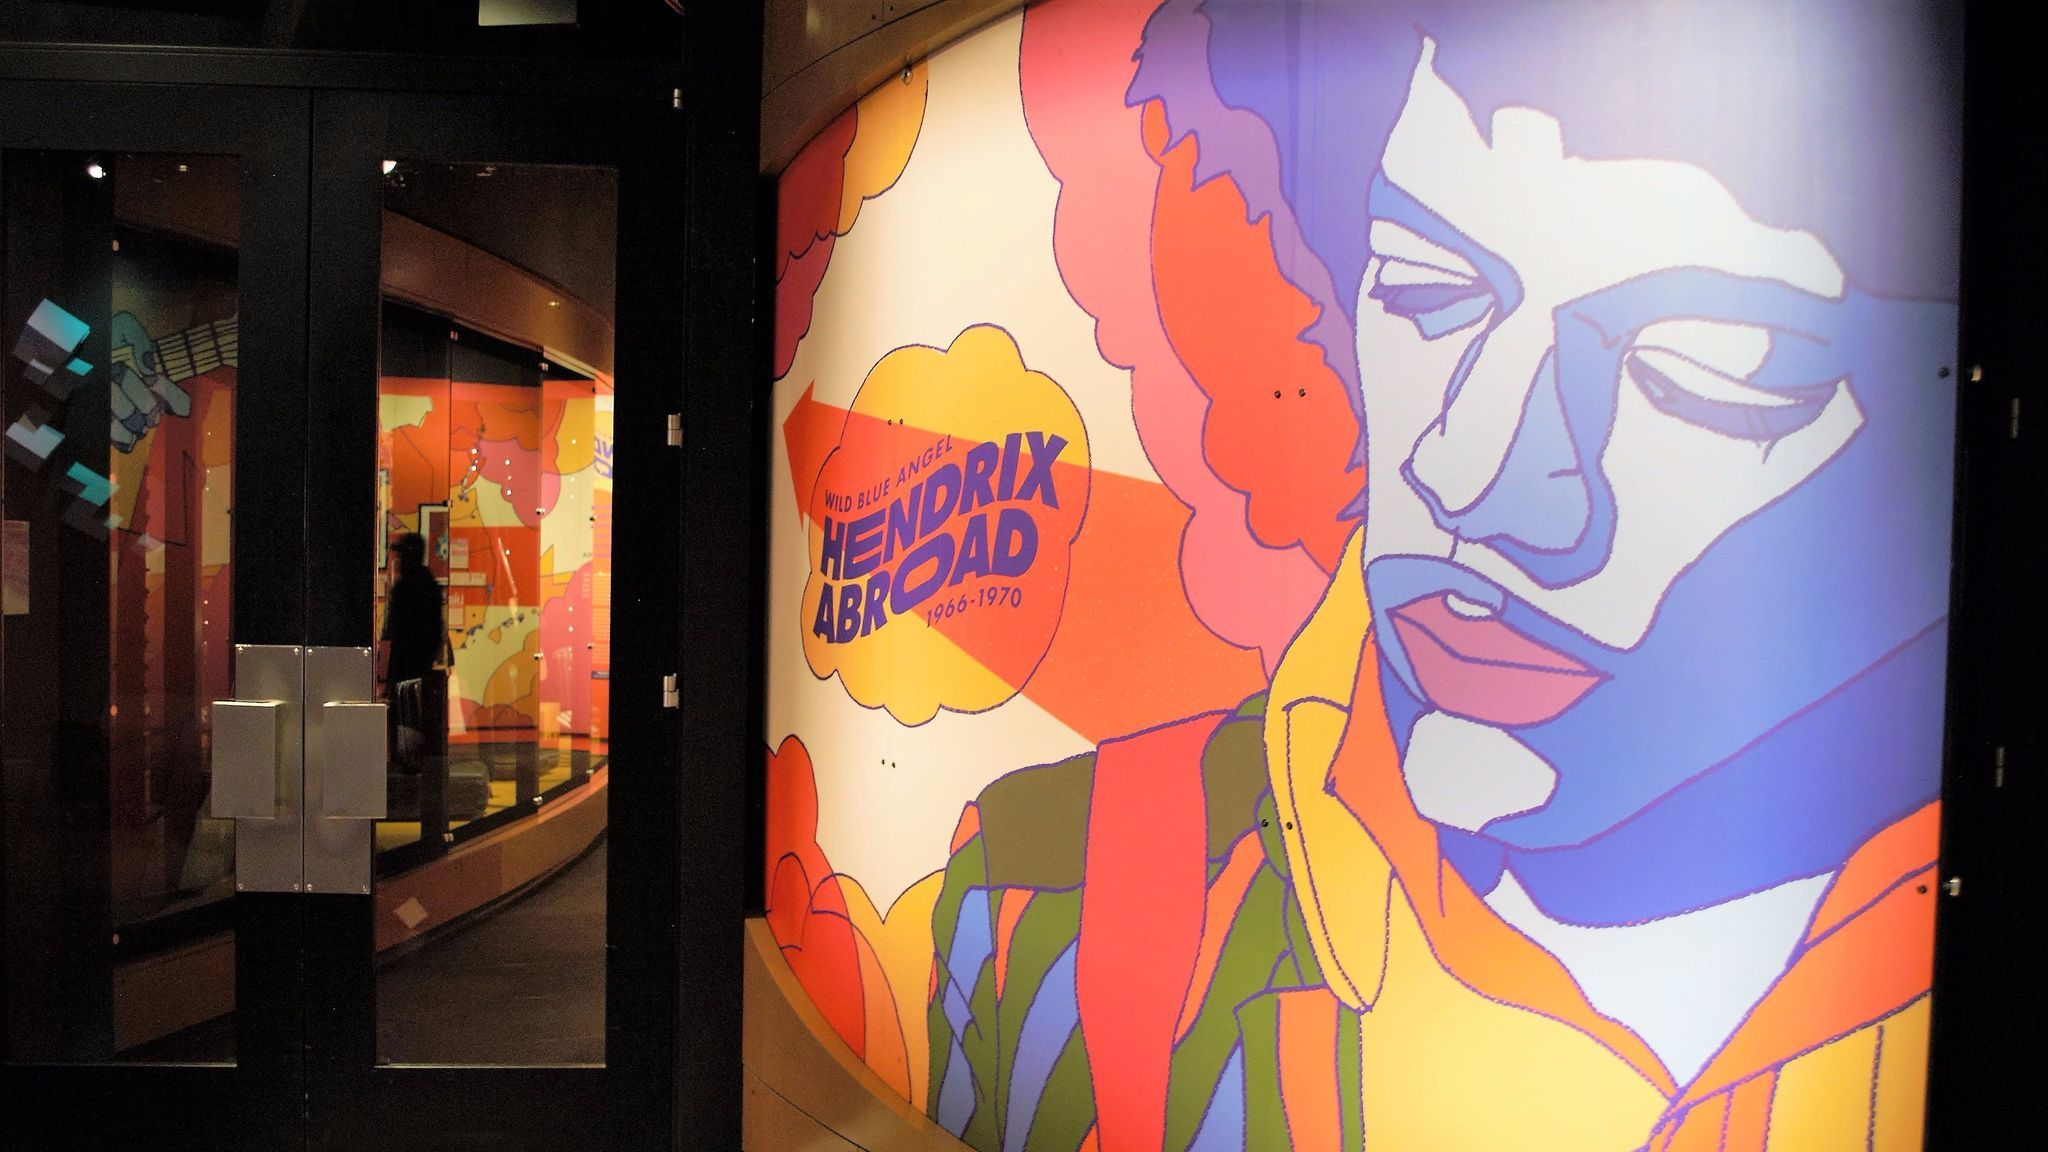 a life and career of jimi hendrix a guitarist in rock history When people think of jimi hendrix, many people think of him as one of the greatest rock guitarists of all time and that reputation is.